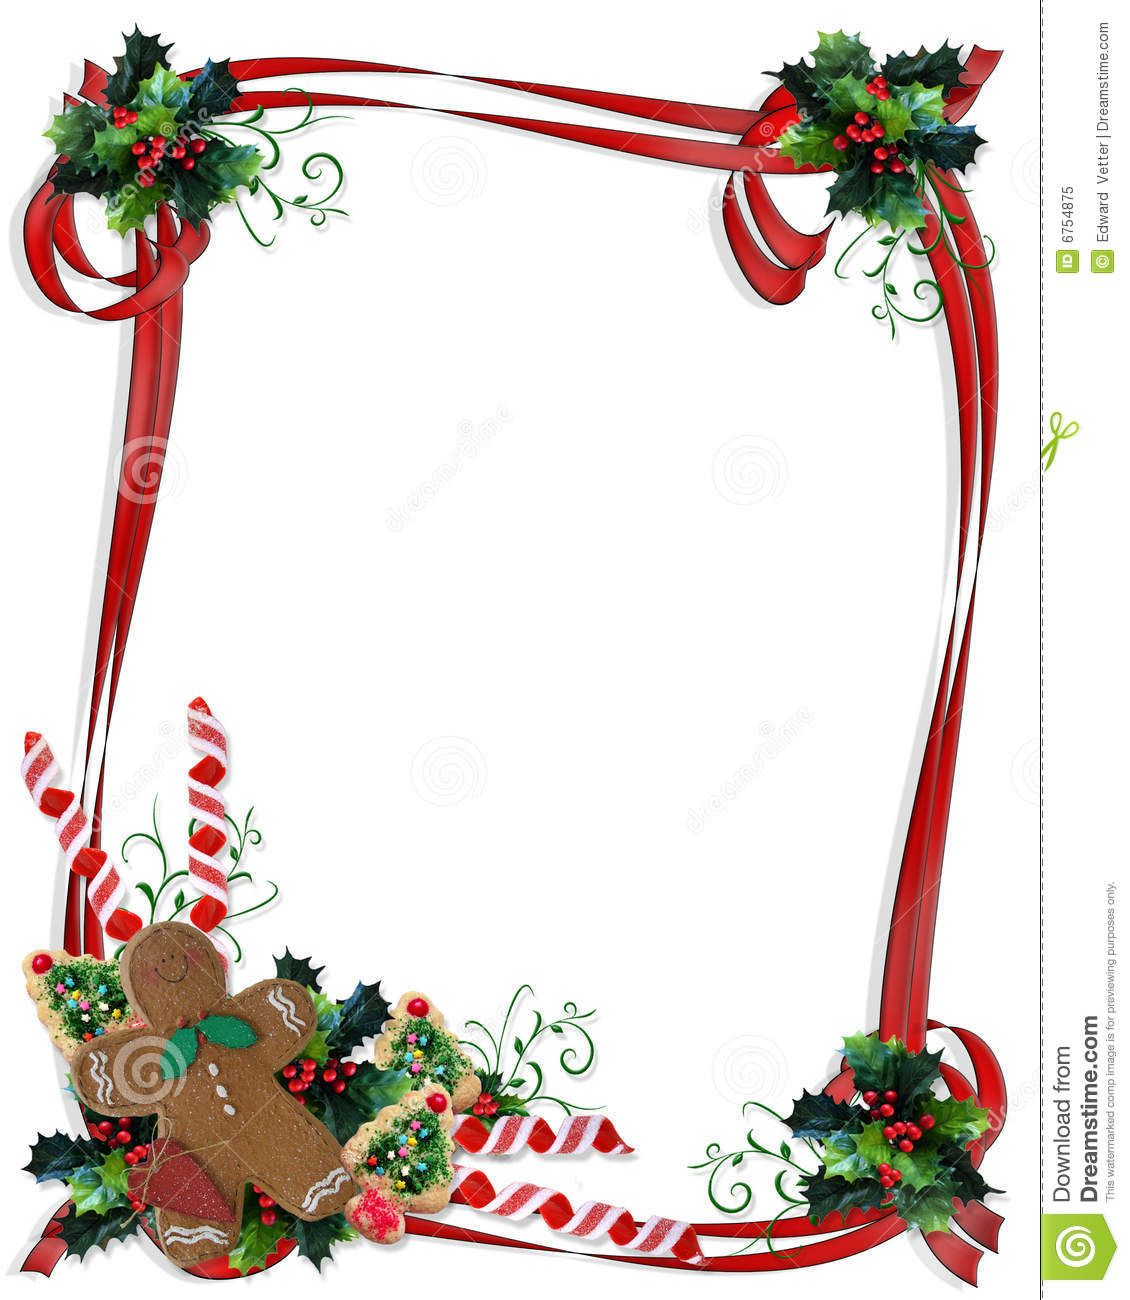 Christmas holidays border clipart svg transparent stock Free Christmas Cookie Border | and Illustration composition for ... svg transparent stock